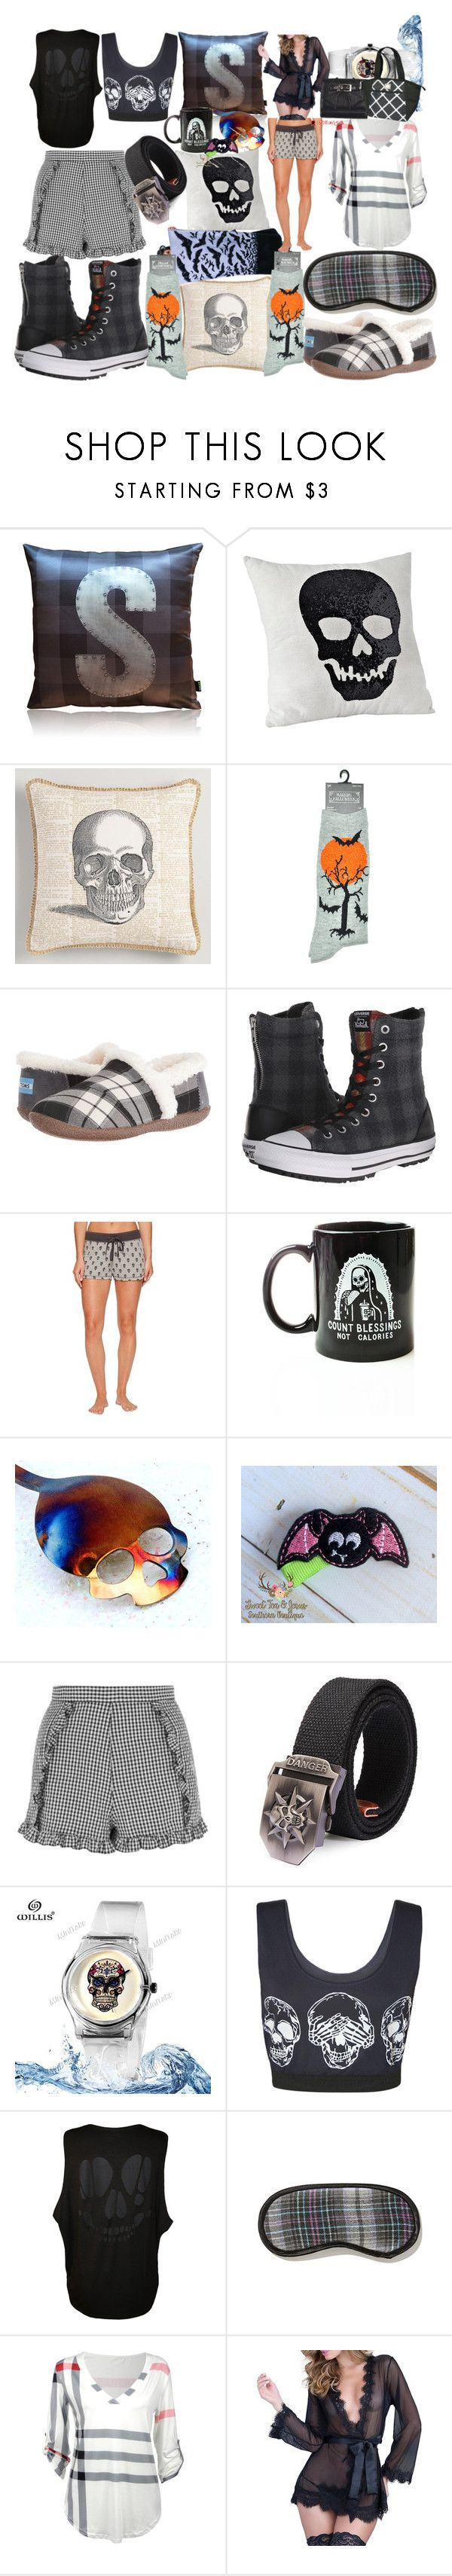 """Skull all day"" by lerp ❤ liked on Polyvore featuring Cost Plus World Market, TOMS, Converse, P.J. Salvage, Pyknic, Topshop, WearAll, Oh La La Cheri and Igloo"